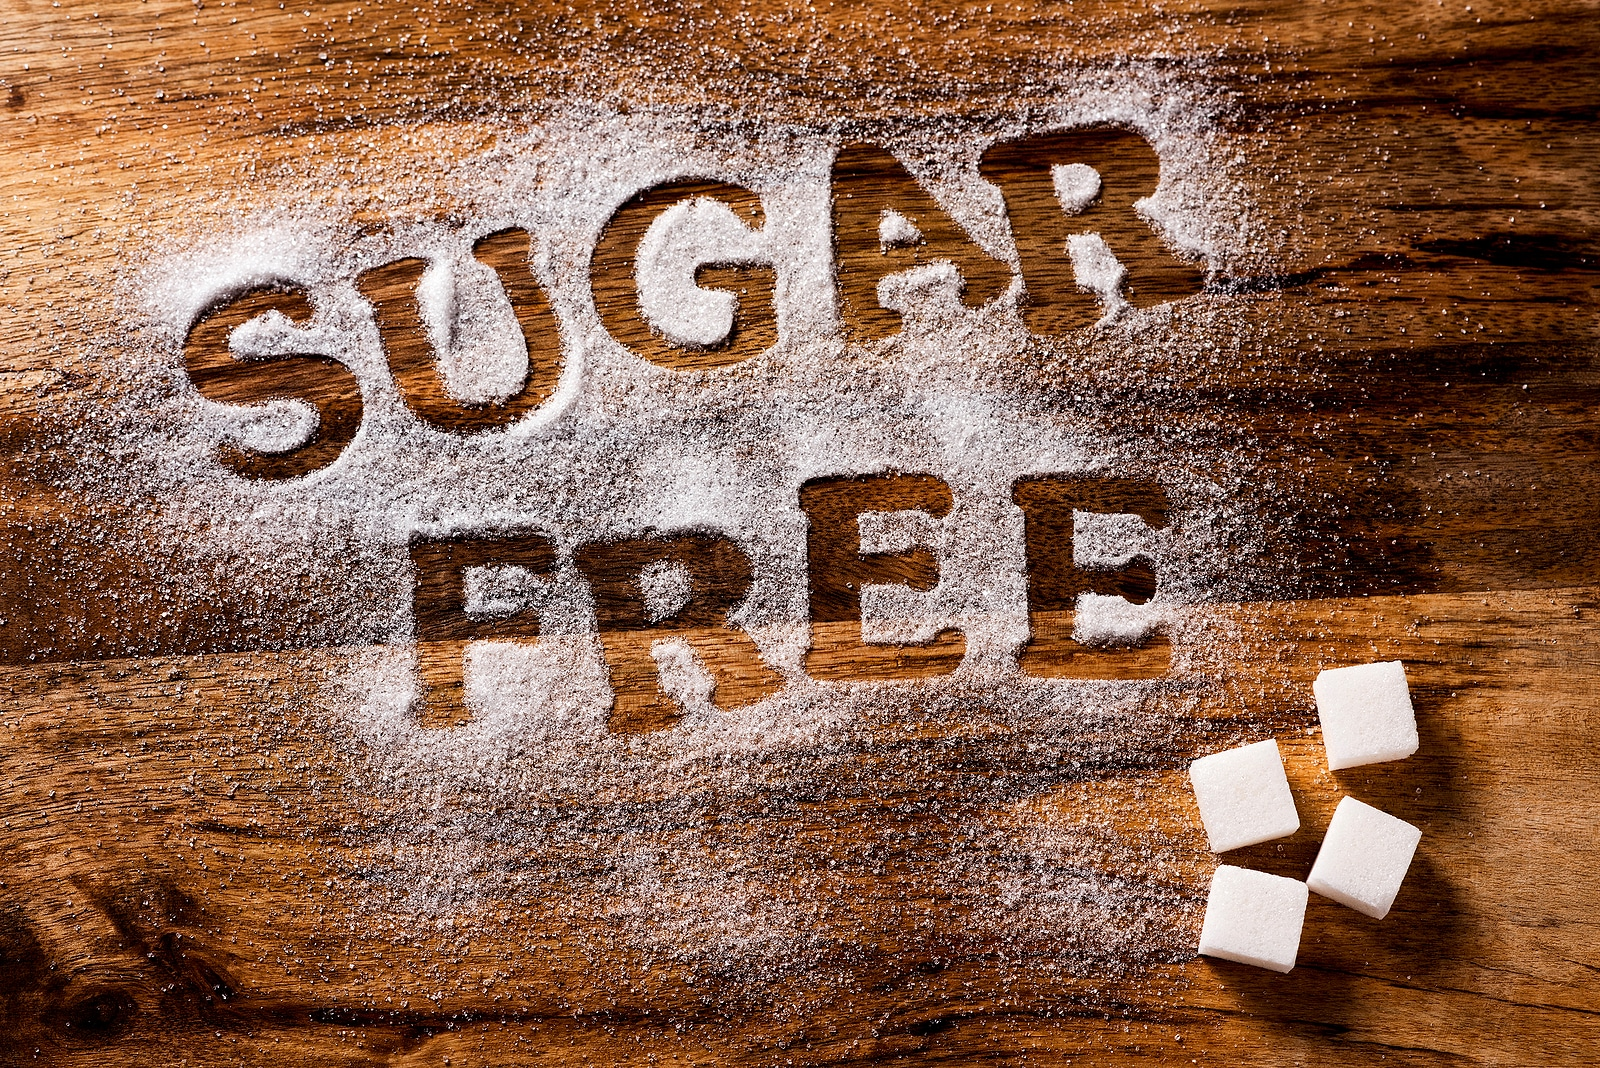 sugar free sign - Millennial Buying Trends